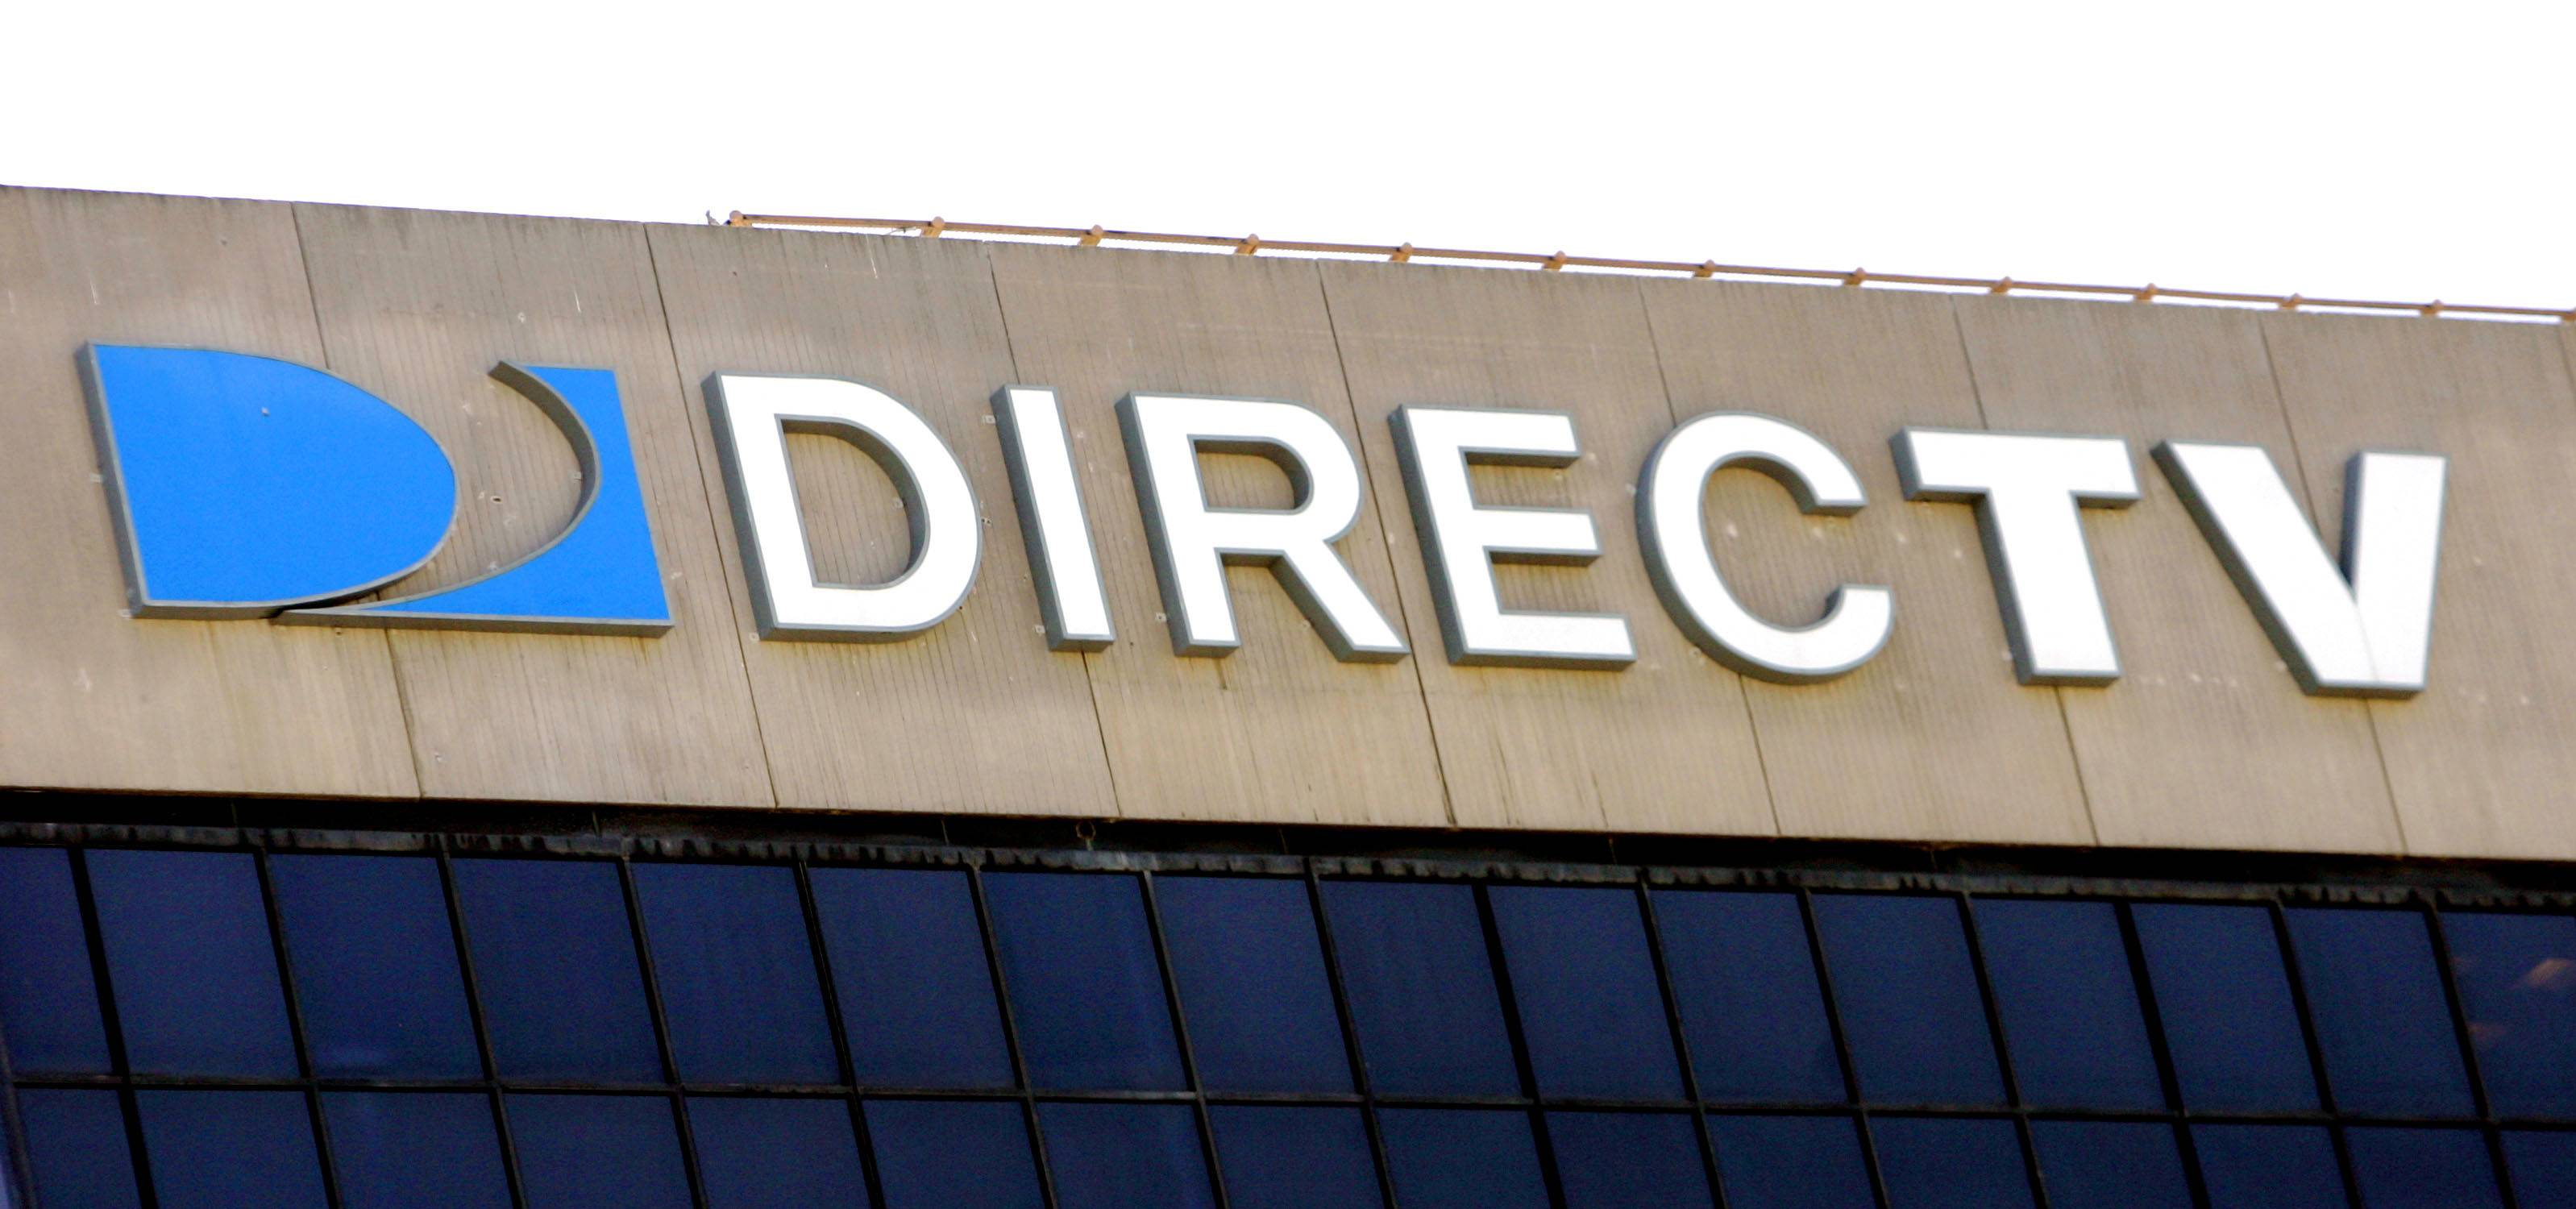 ASSOCIATED PRESS AT&T says it is buying DirecTV for $95 per share, or $49 billion, a move that gives the telecommunications company a larger base of video subscribers and increases its ability to compete against Comcast and Time Warner Cable, which agreed to a merger in February.